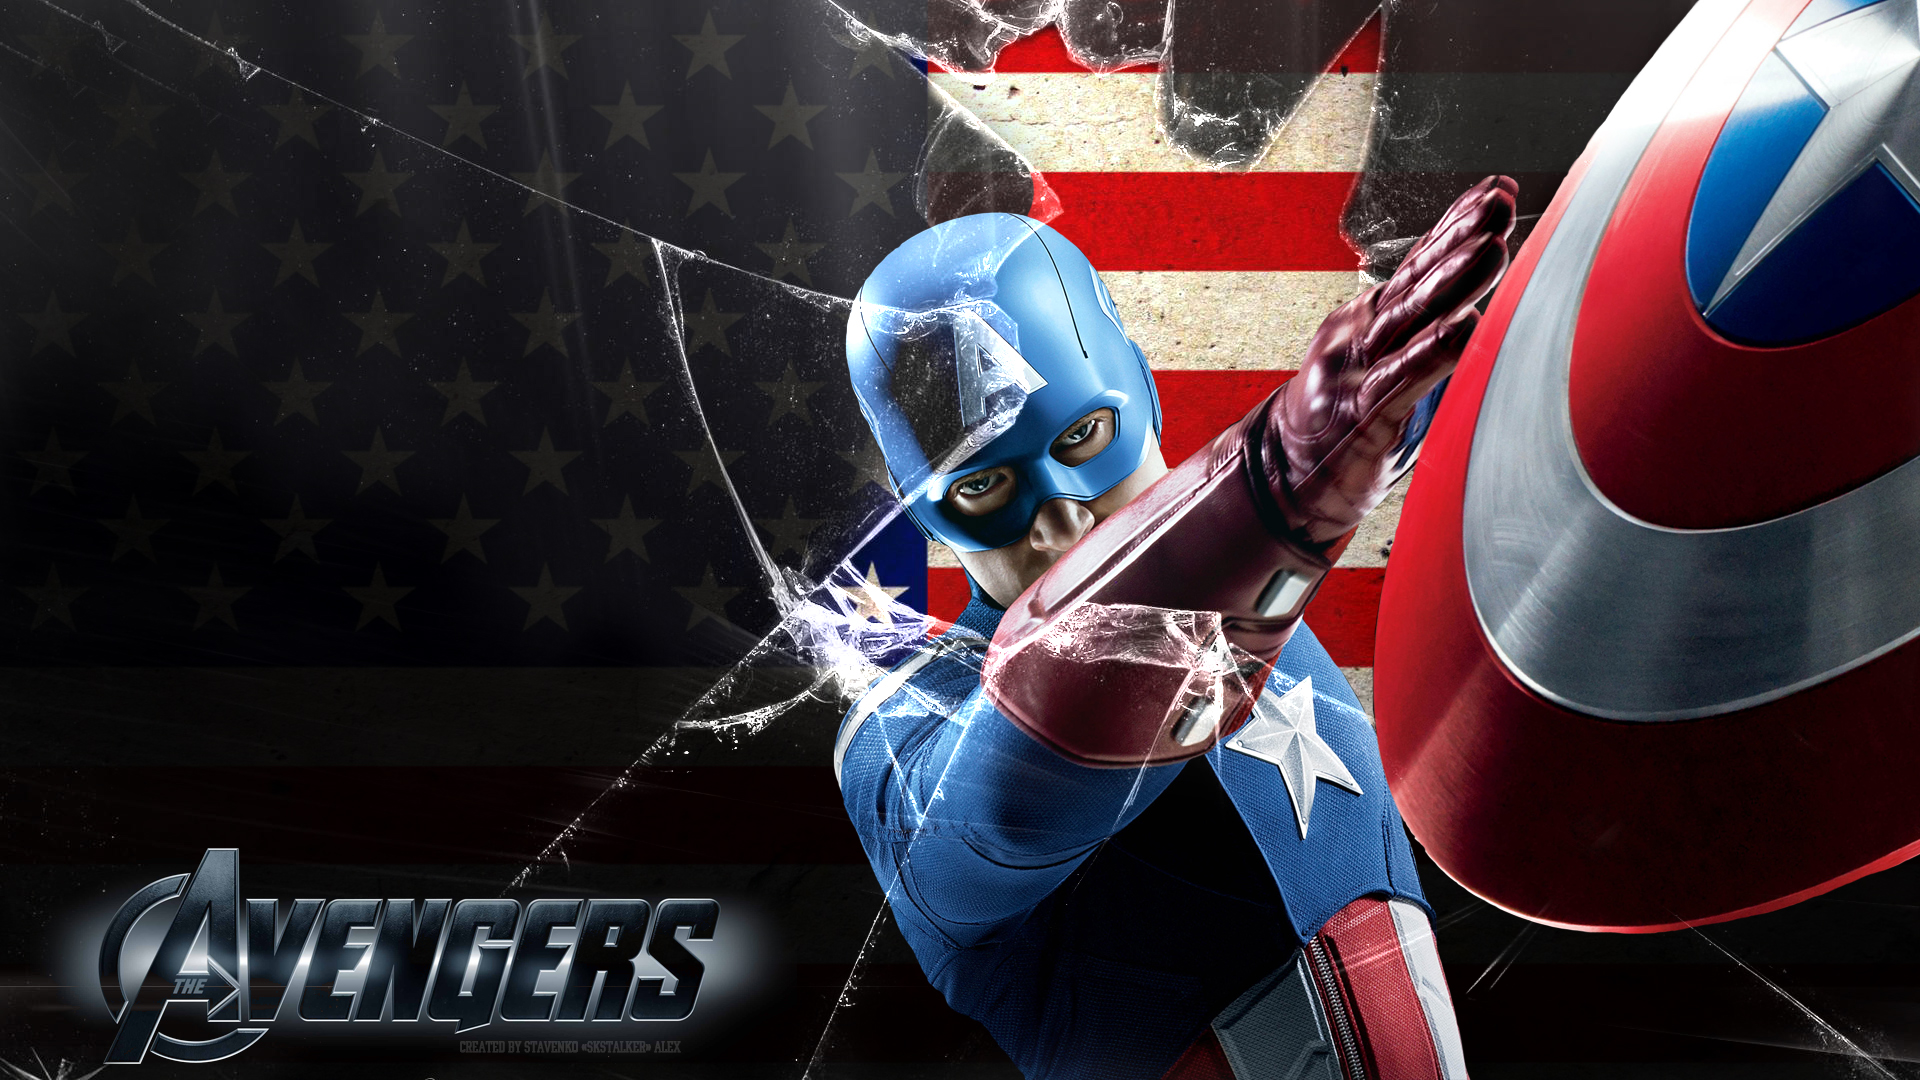 Hd wallpaper captain america - Captain America Wallpaper 1080p By Skstalker Fan Art Wallpaper